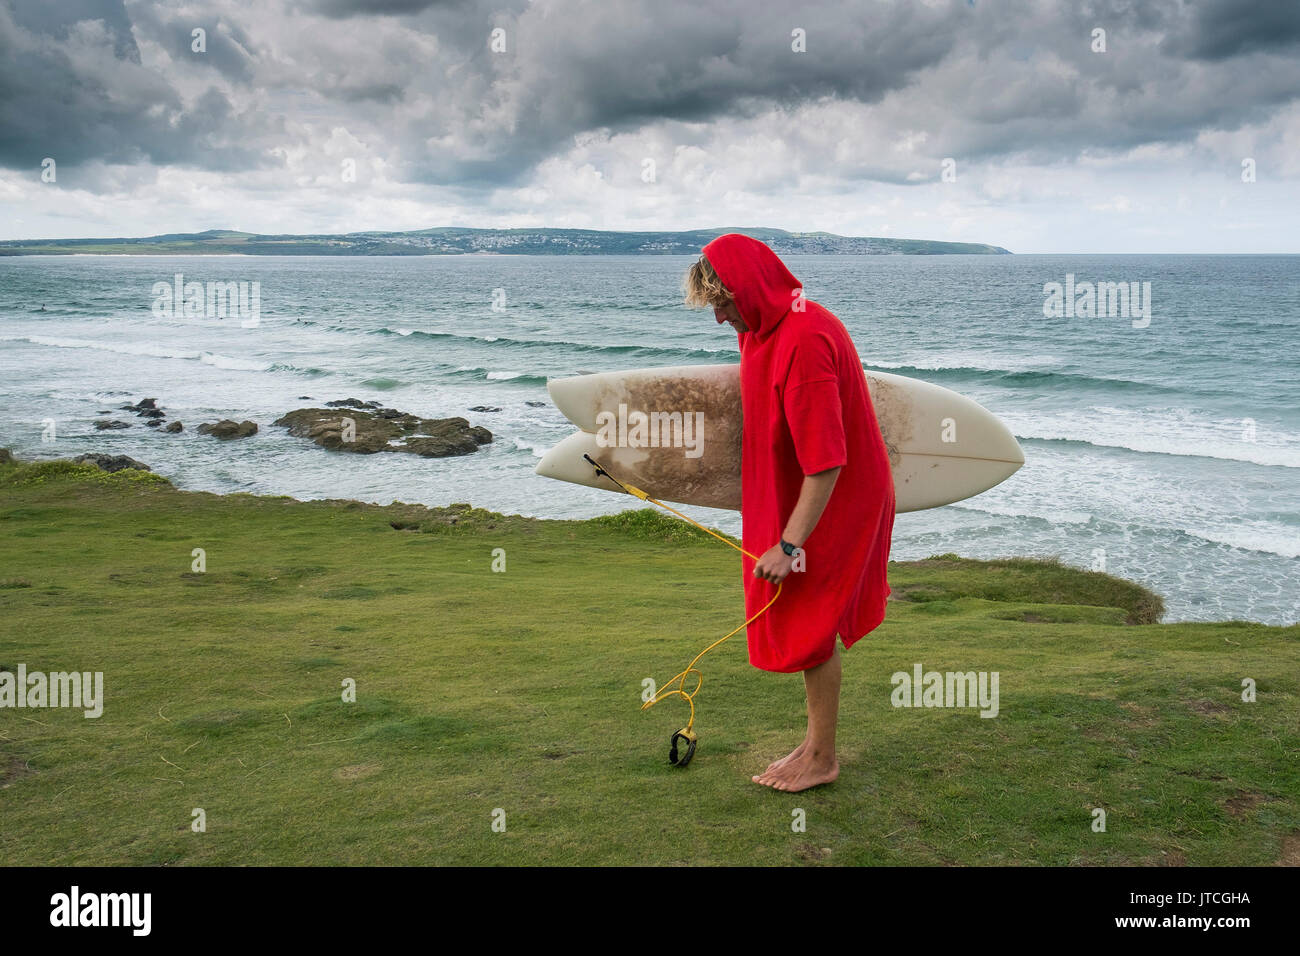 A surfer wearing a red surfing poncho holding a surfboard at Godrevy in Cornwall. - Stock Image